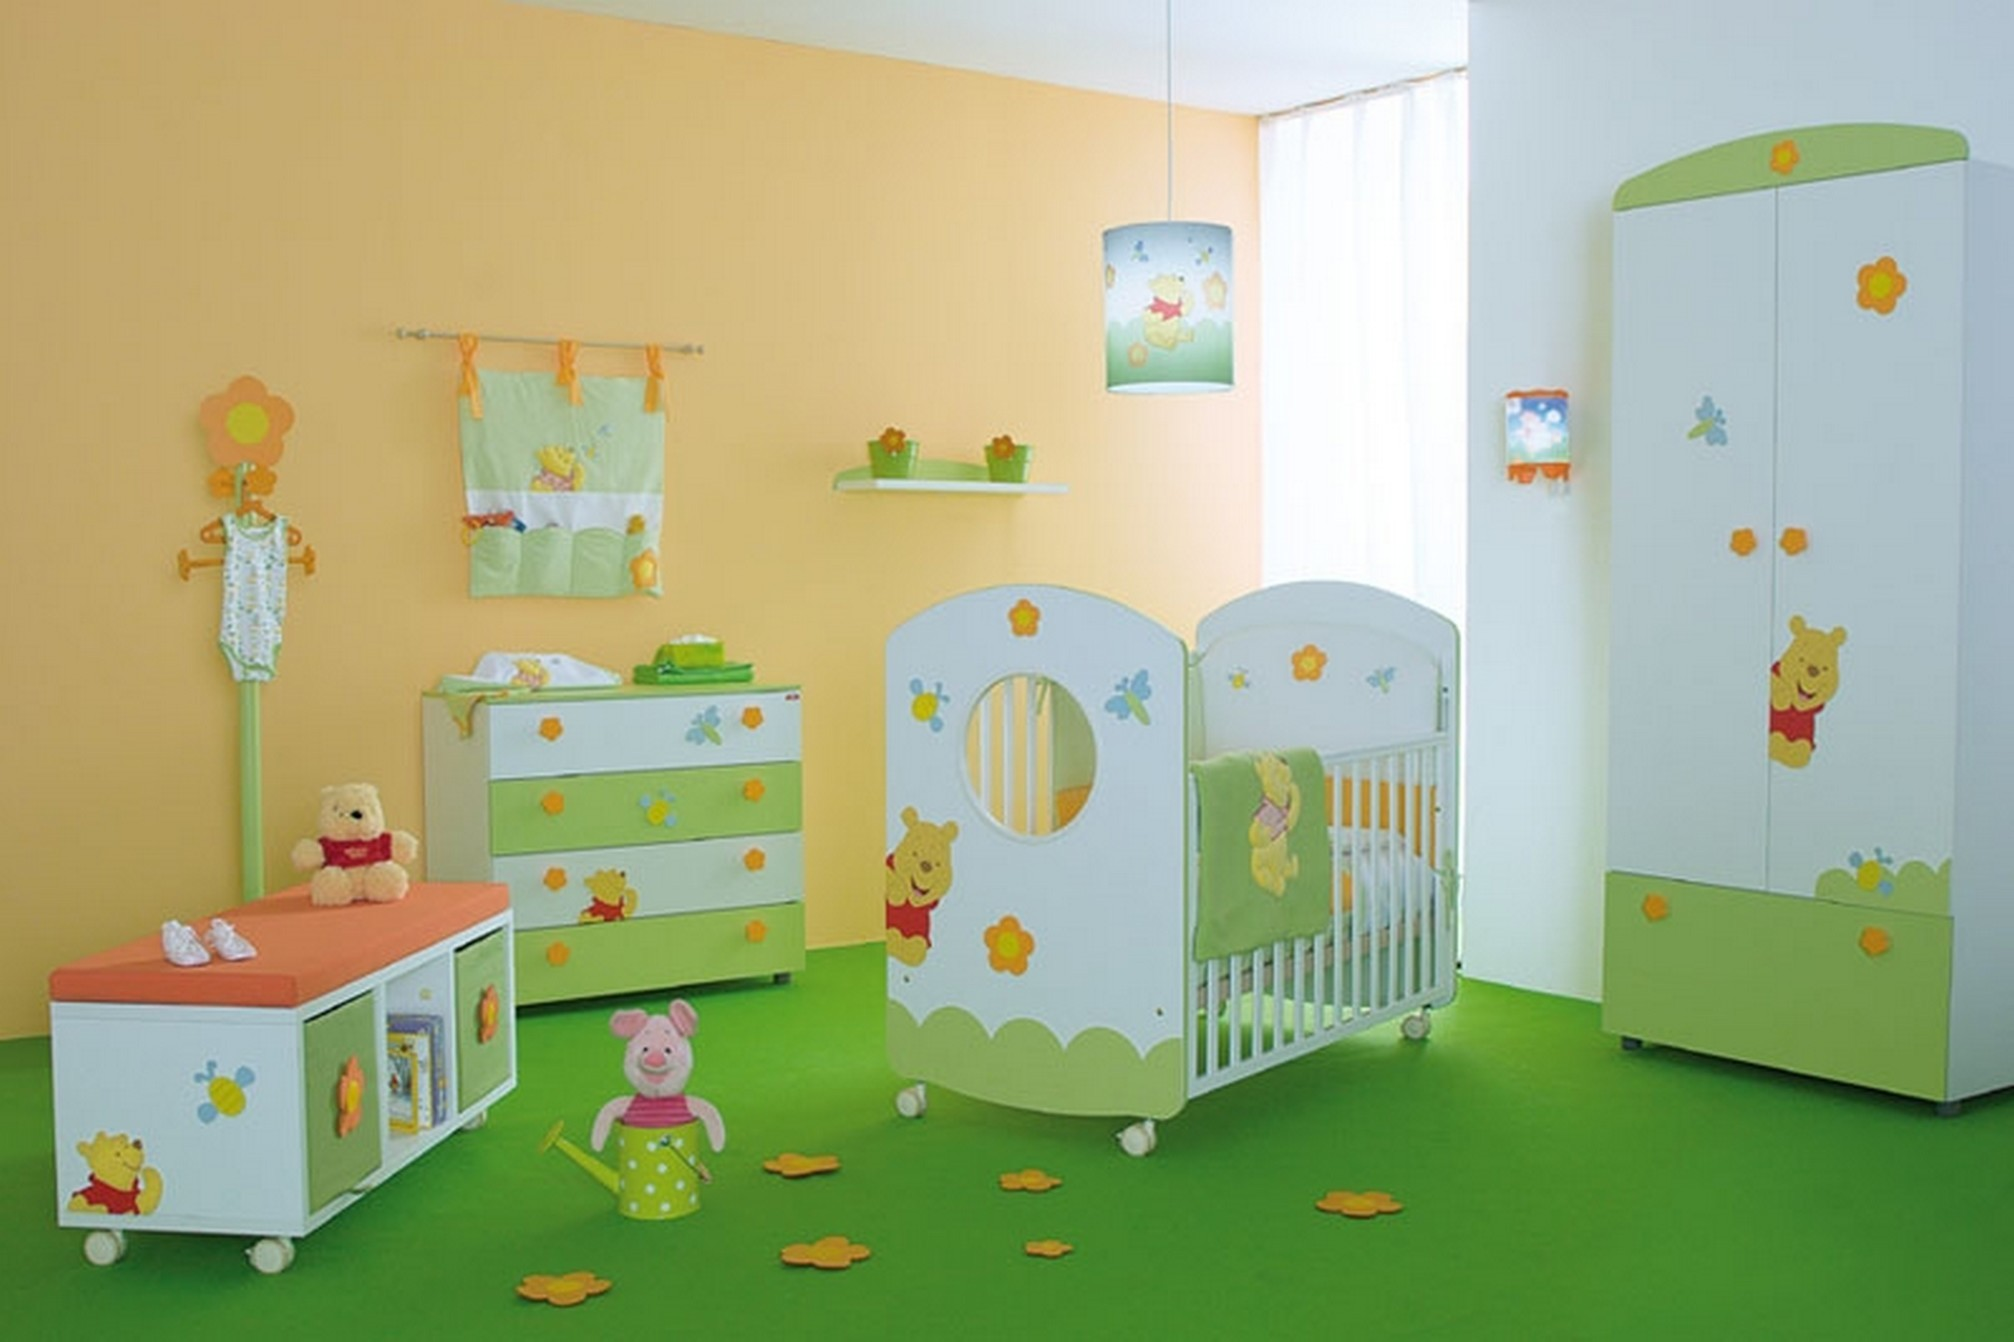 Res: 2014x1342, Stylish And Peaceful Winnie The Pooh Room Decorations Baby For Decor  Imanada Bedroom Nursery With Green Color Schemes Boy